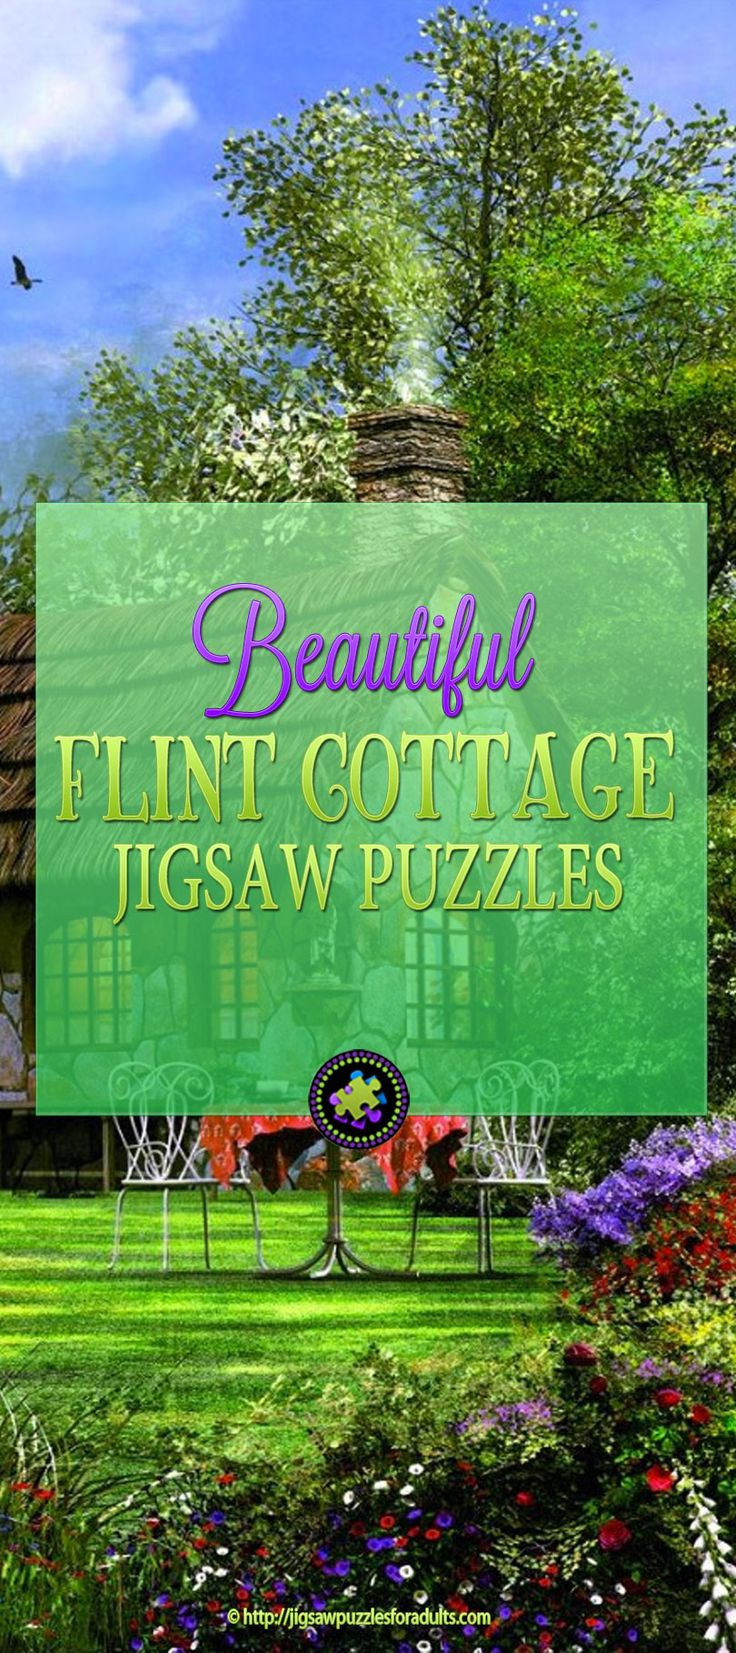 The Flint Cottage Jigsaw Puzzle is a beautiful jigsaw puzzle that challenges you while immersing you in the peace and tranquility.